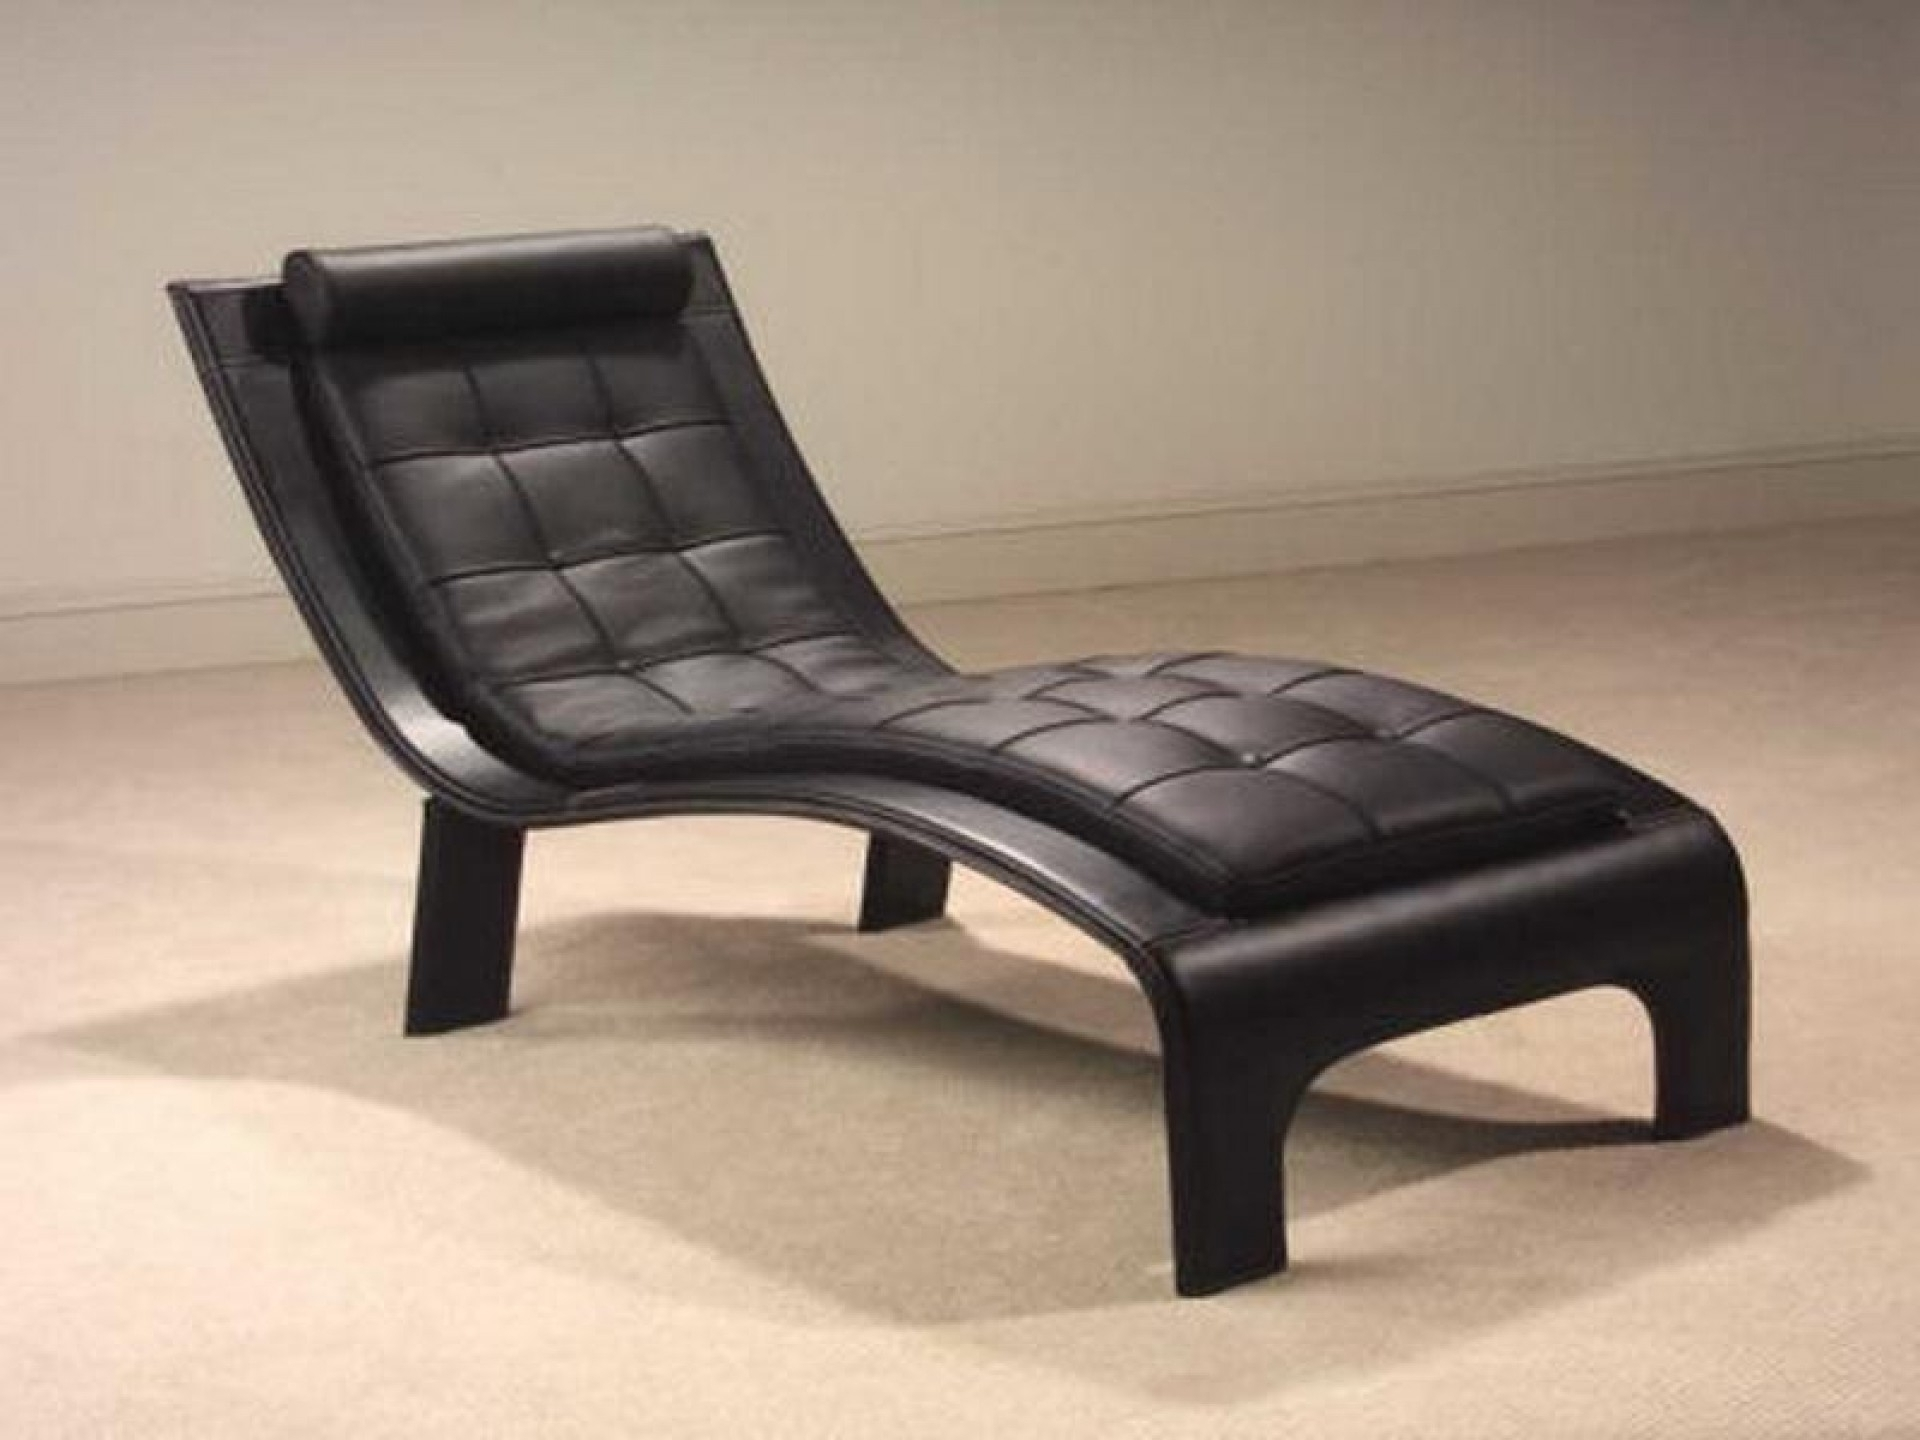 Popular Black Leather Chaise Lounge Chairs • Lounge Chairs Ideas With Black Leather Chaises (View 15 of 15)